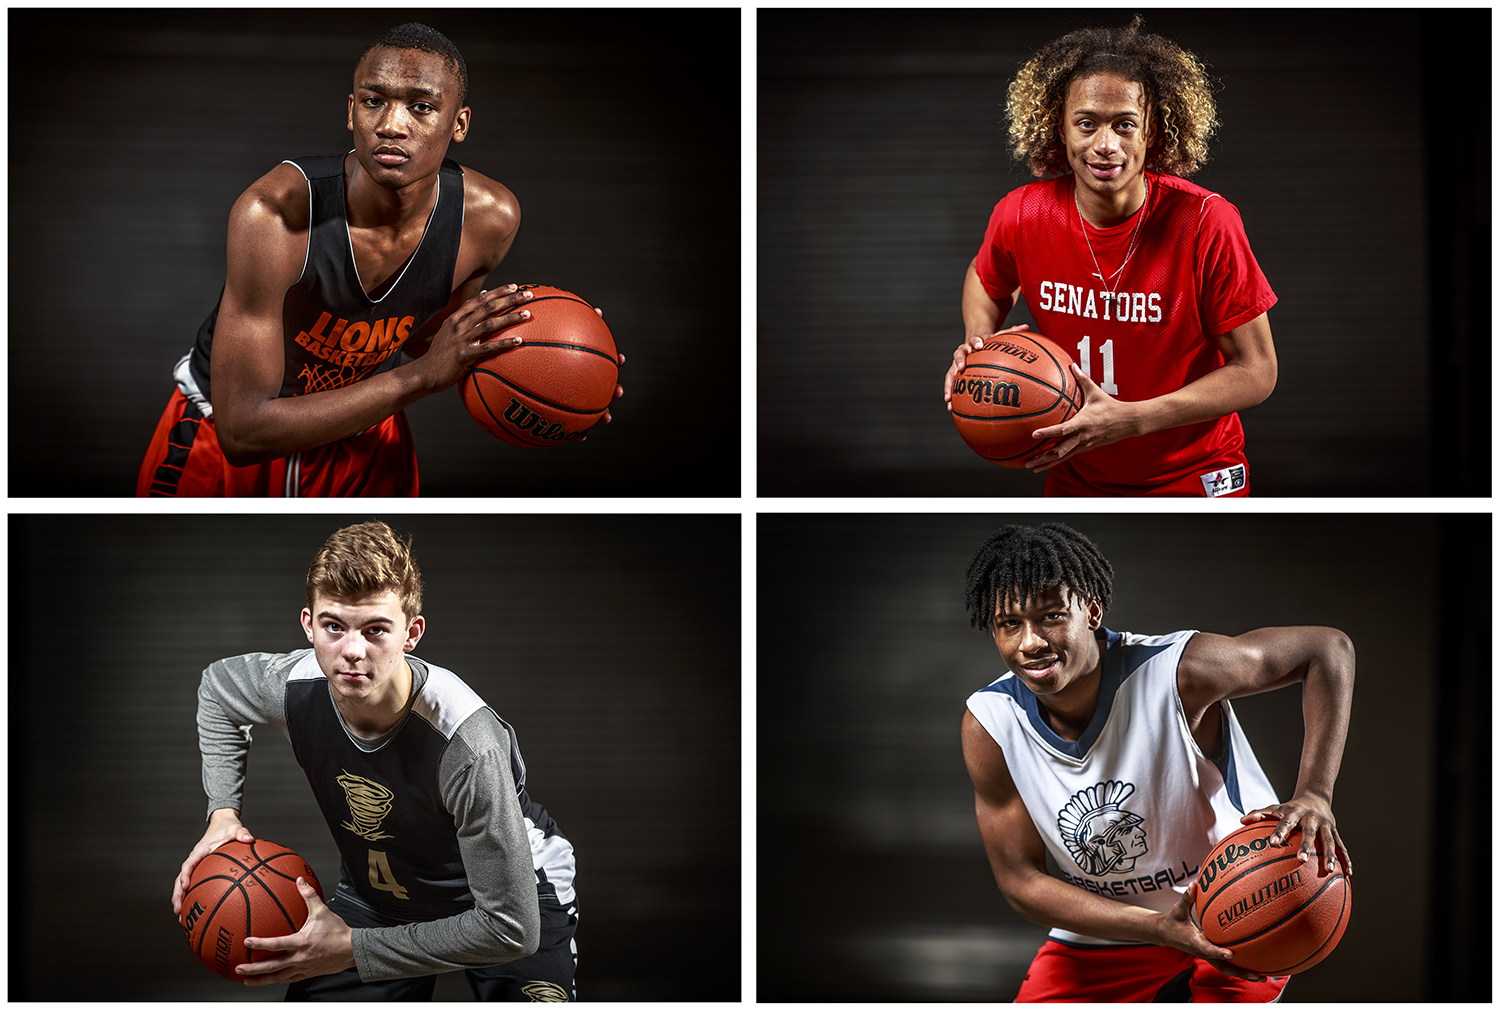 Lanphier senior guard James Jones, top left, Springfield junior guard Zaire Harris, top right, Sacred Heart-Griffin junior guard Charlie Hamilton, bottom left, and Southeast junior guard Stepheon Sims, bottom right.The four were considered to play a key role for their respective teams in advance of the Springfield City Boys Basketball Tournament. [Justin L. Fowler/The State Journal-Register]